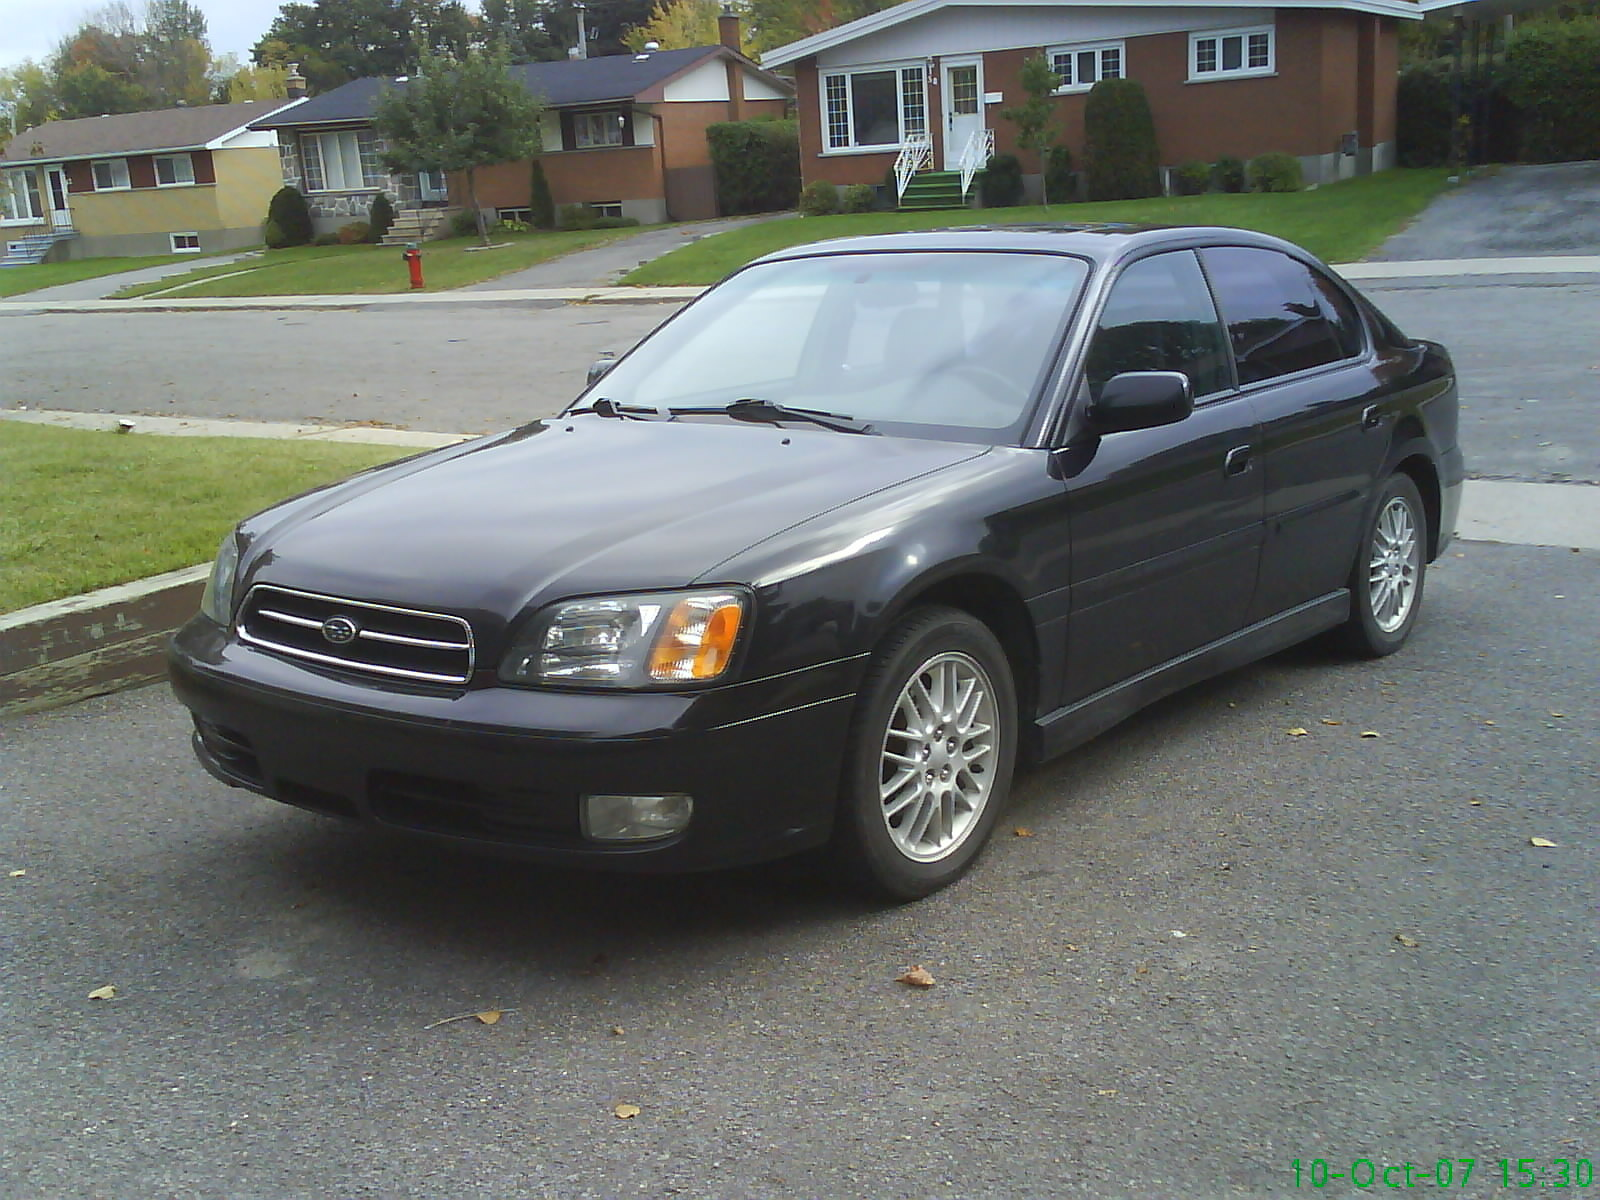 2001 subaru legacy test drive review cargurus 2001 subaru legacy test drive review